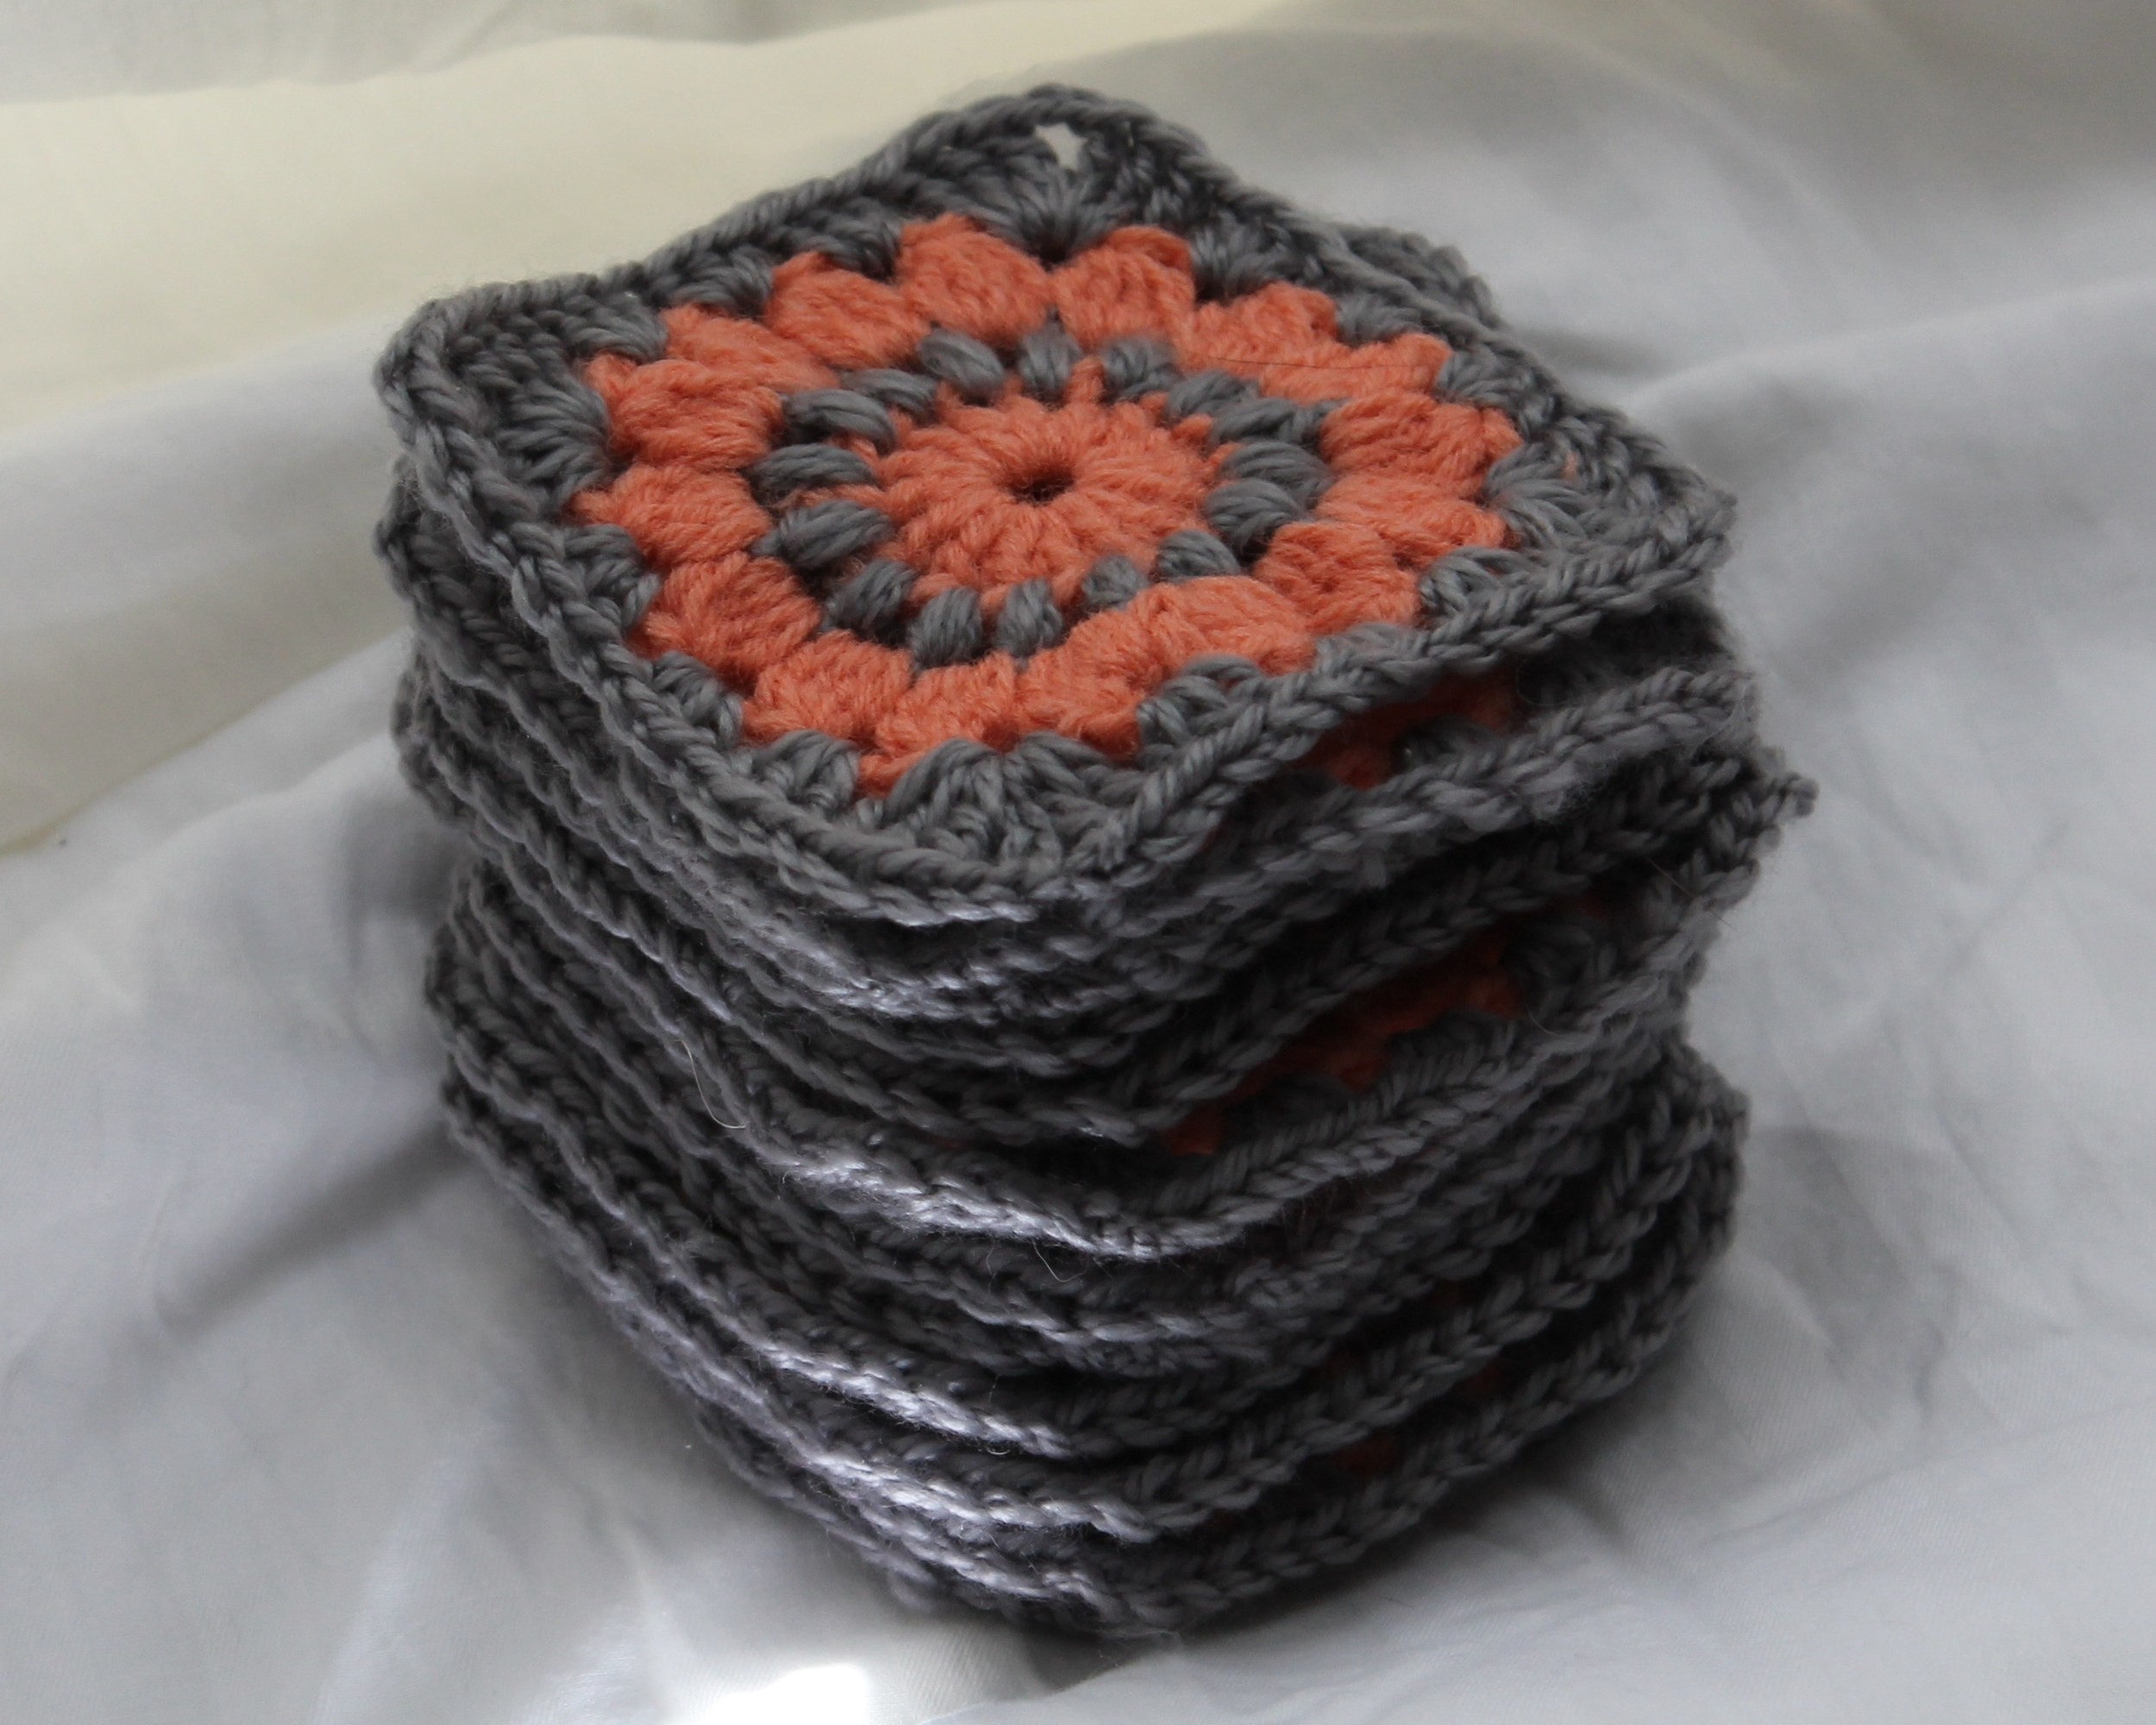 Coral and gray granny squares in a stack